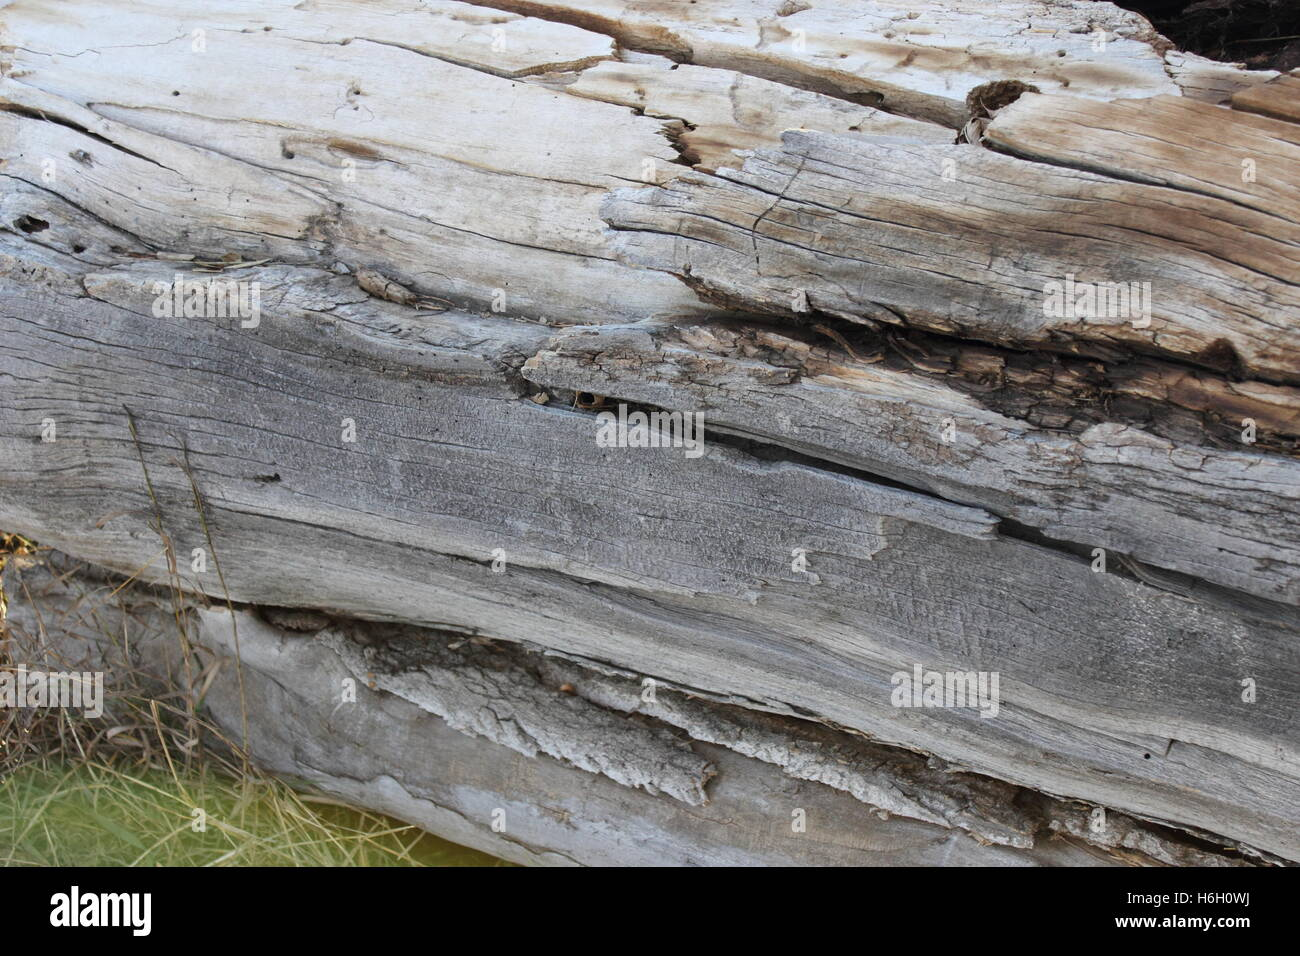 deatailed image of the texture of an old oak tree's bark - Stock Image